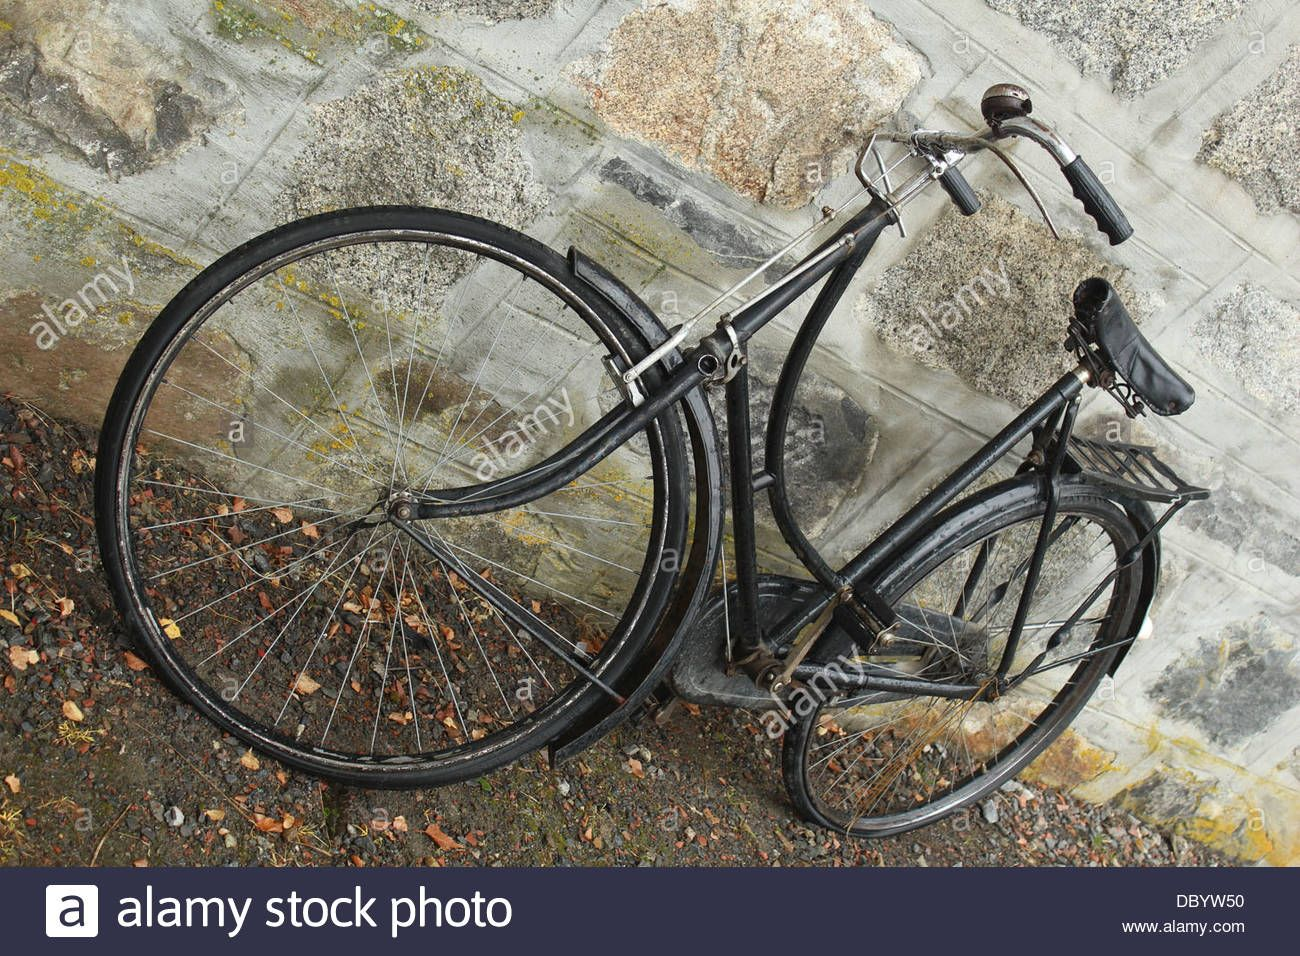 Pin by lavie darkling on april bright black bicycle